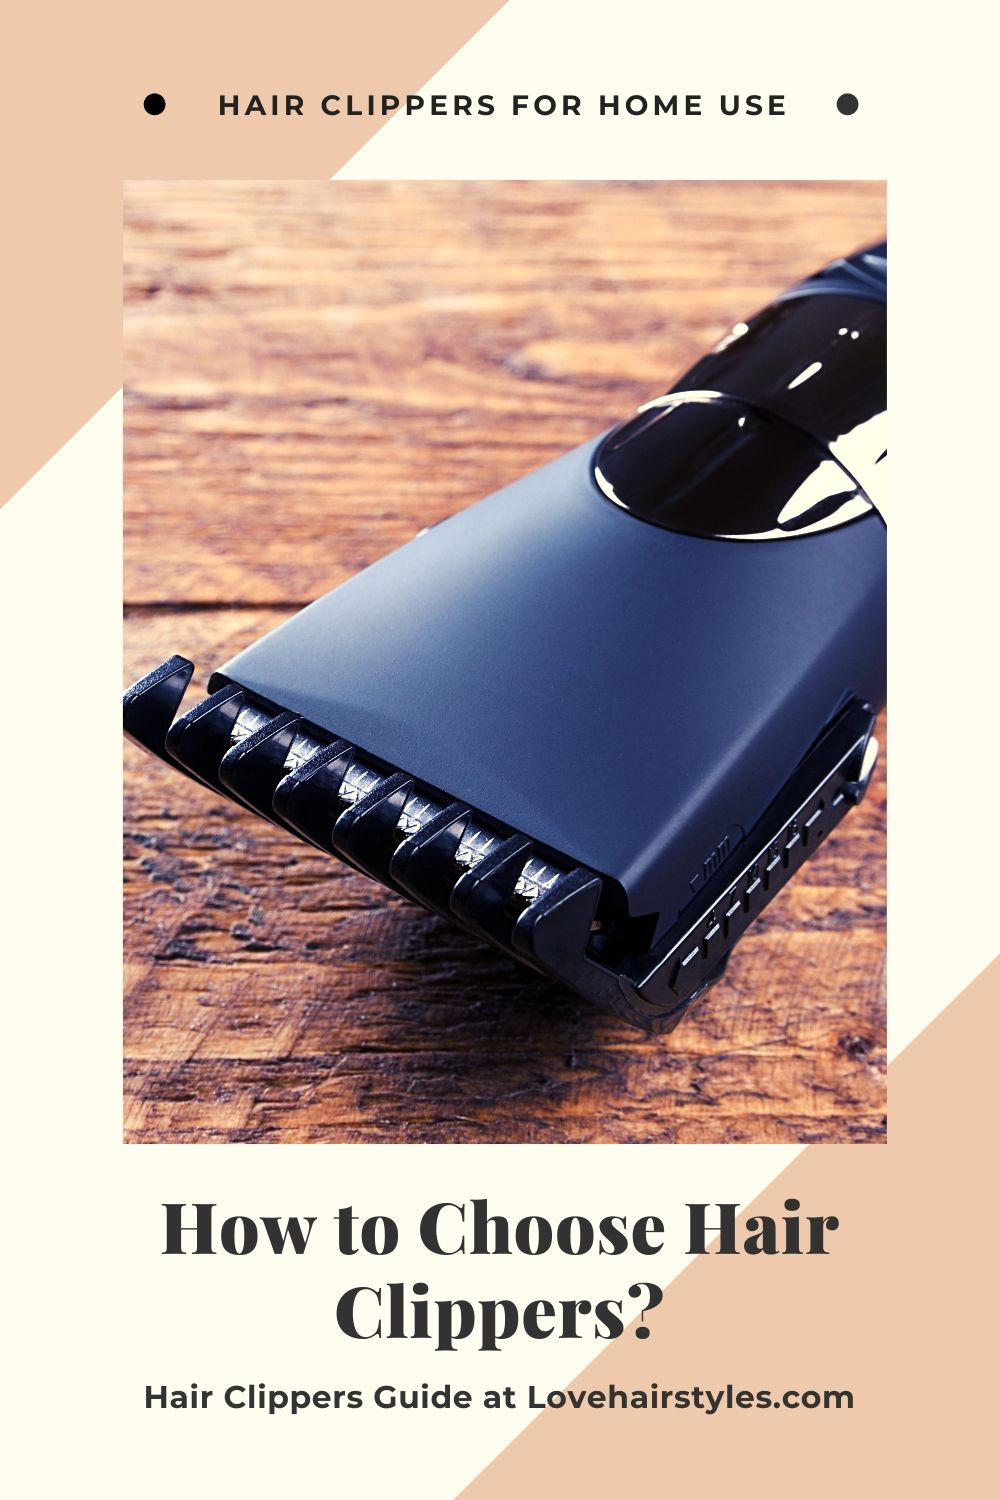 Things to consider before buying hair clippers